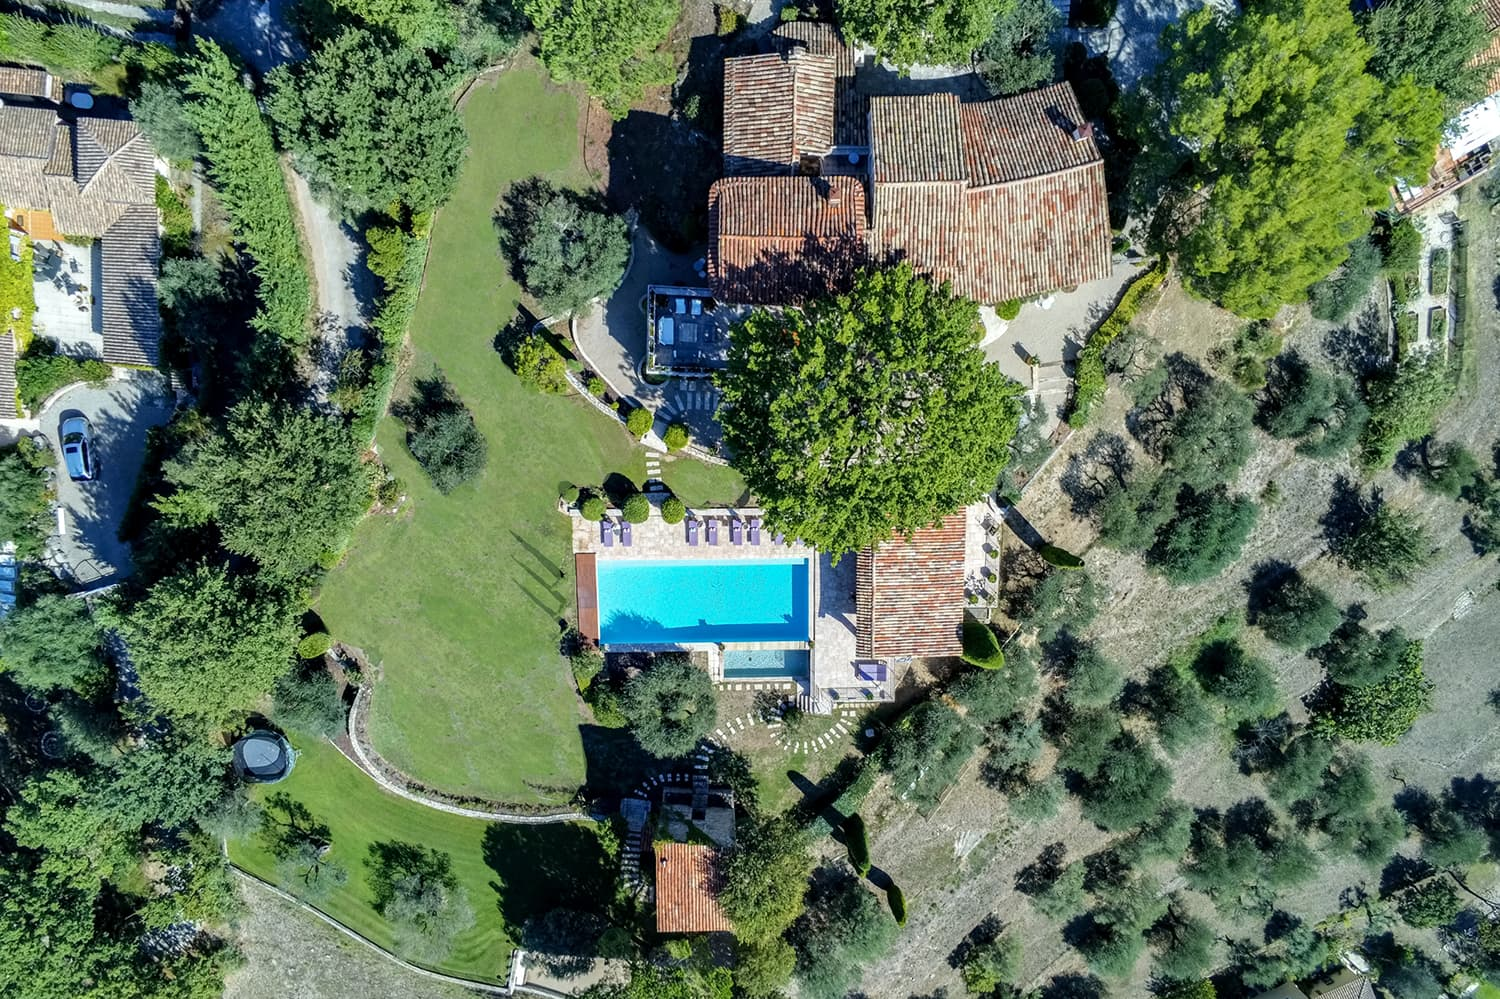 Holiday accommodation with private, heated pool in Montauroux, Provence-Alpes-Côte d'Azur